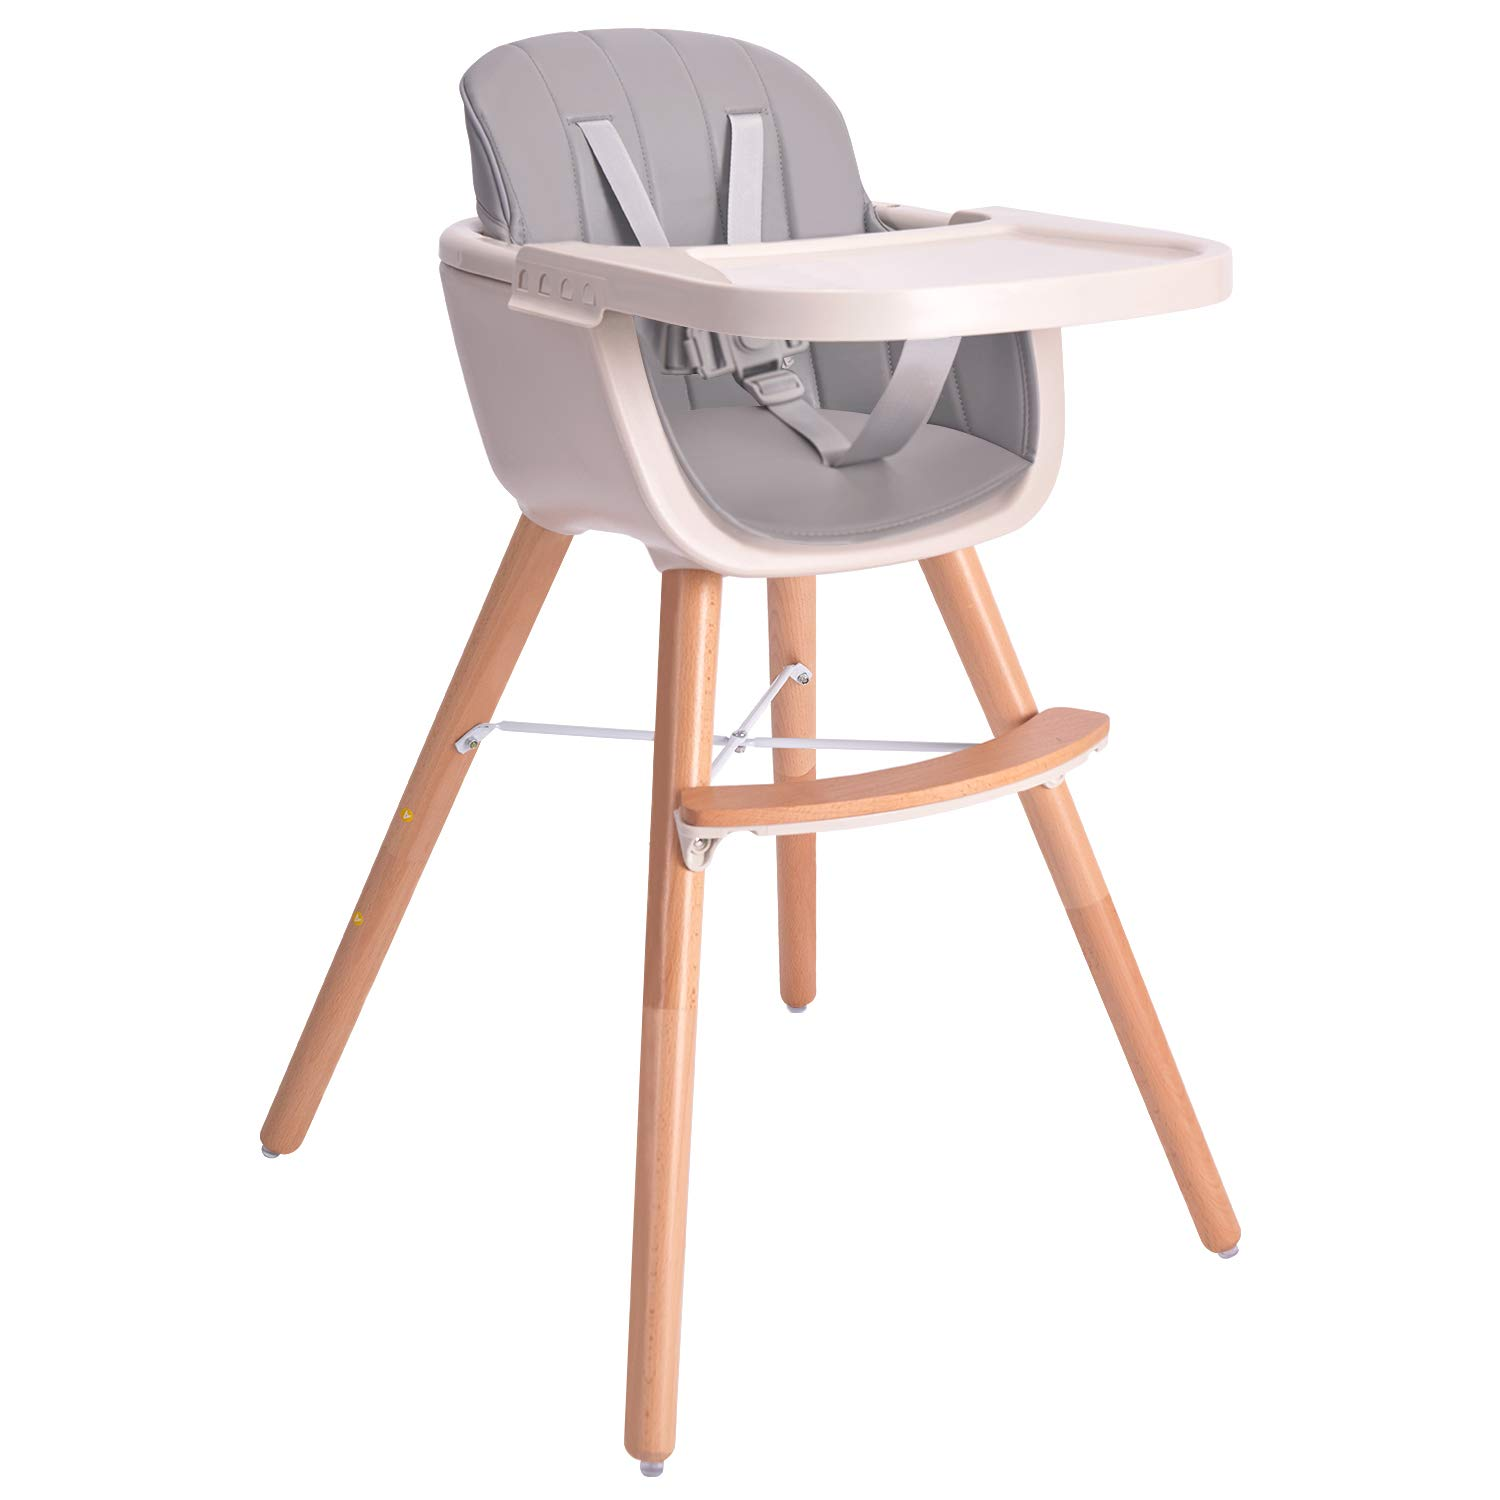 Baby High Chair, 3 in 1 Wooden High Chair with Removable Tray and Adjustable Legs for Baby/Infants/Toddlers by HM-tech